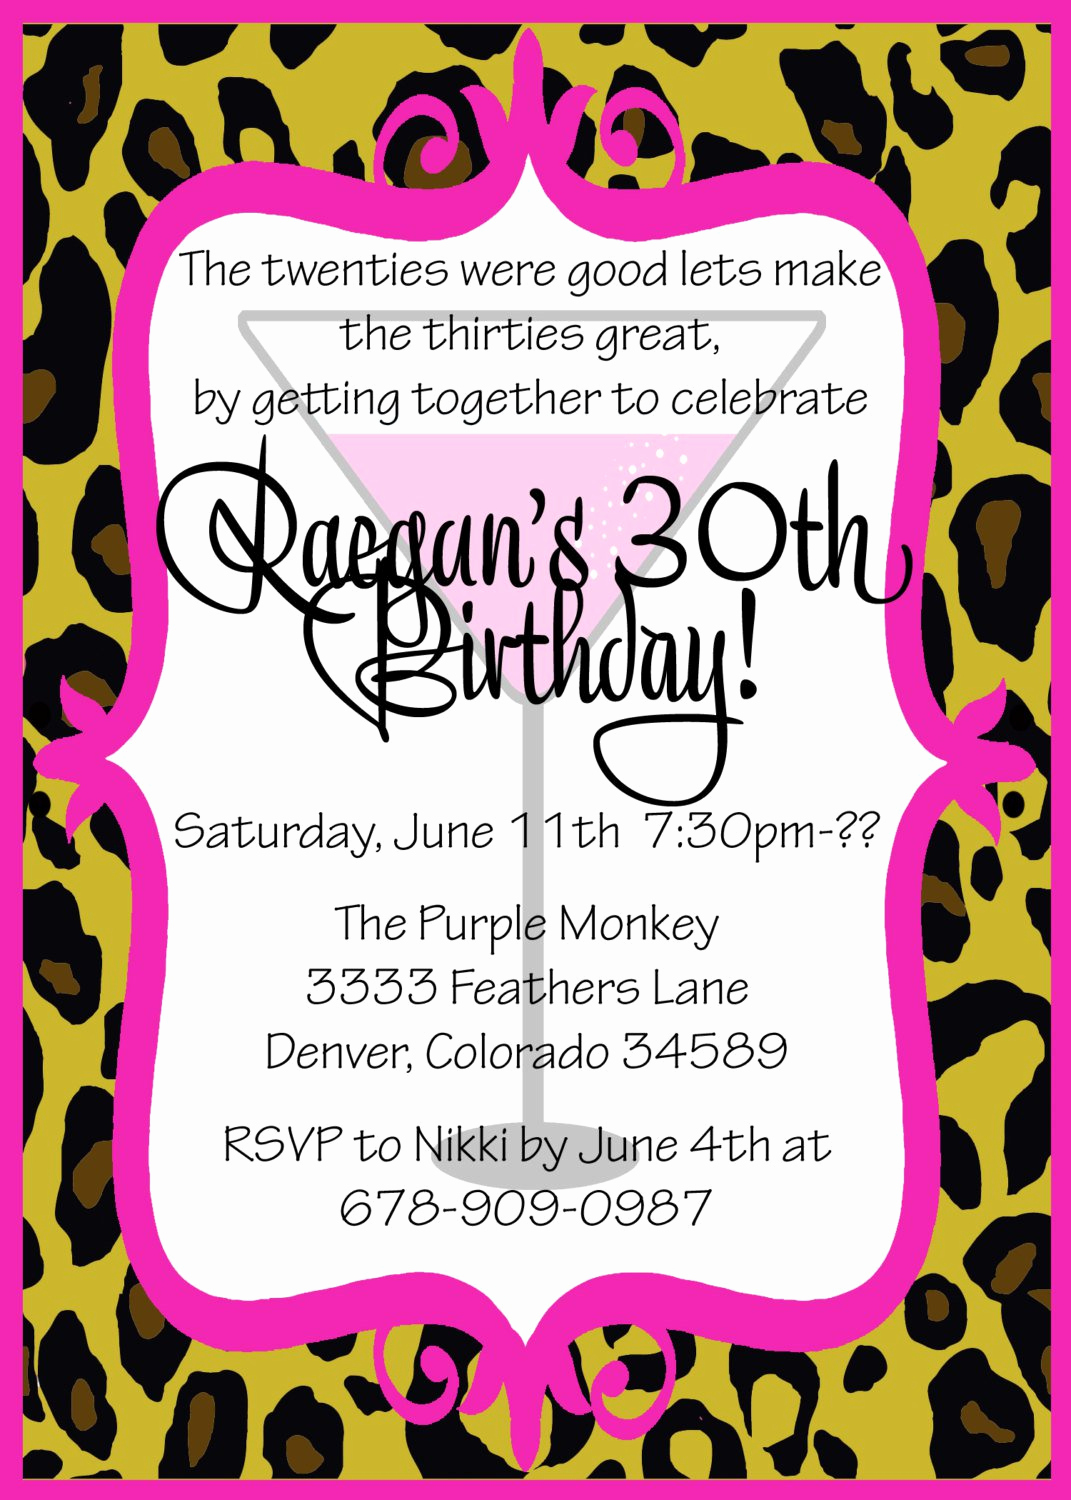 Anniversary Party Invitation Wording Best Of Creative Birthday Invitation Wording